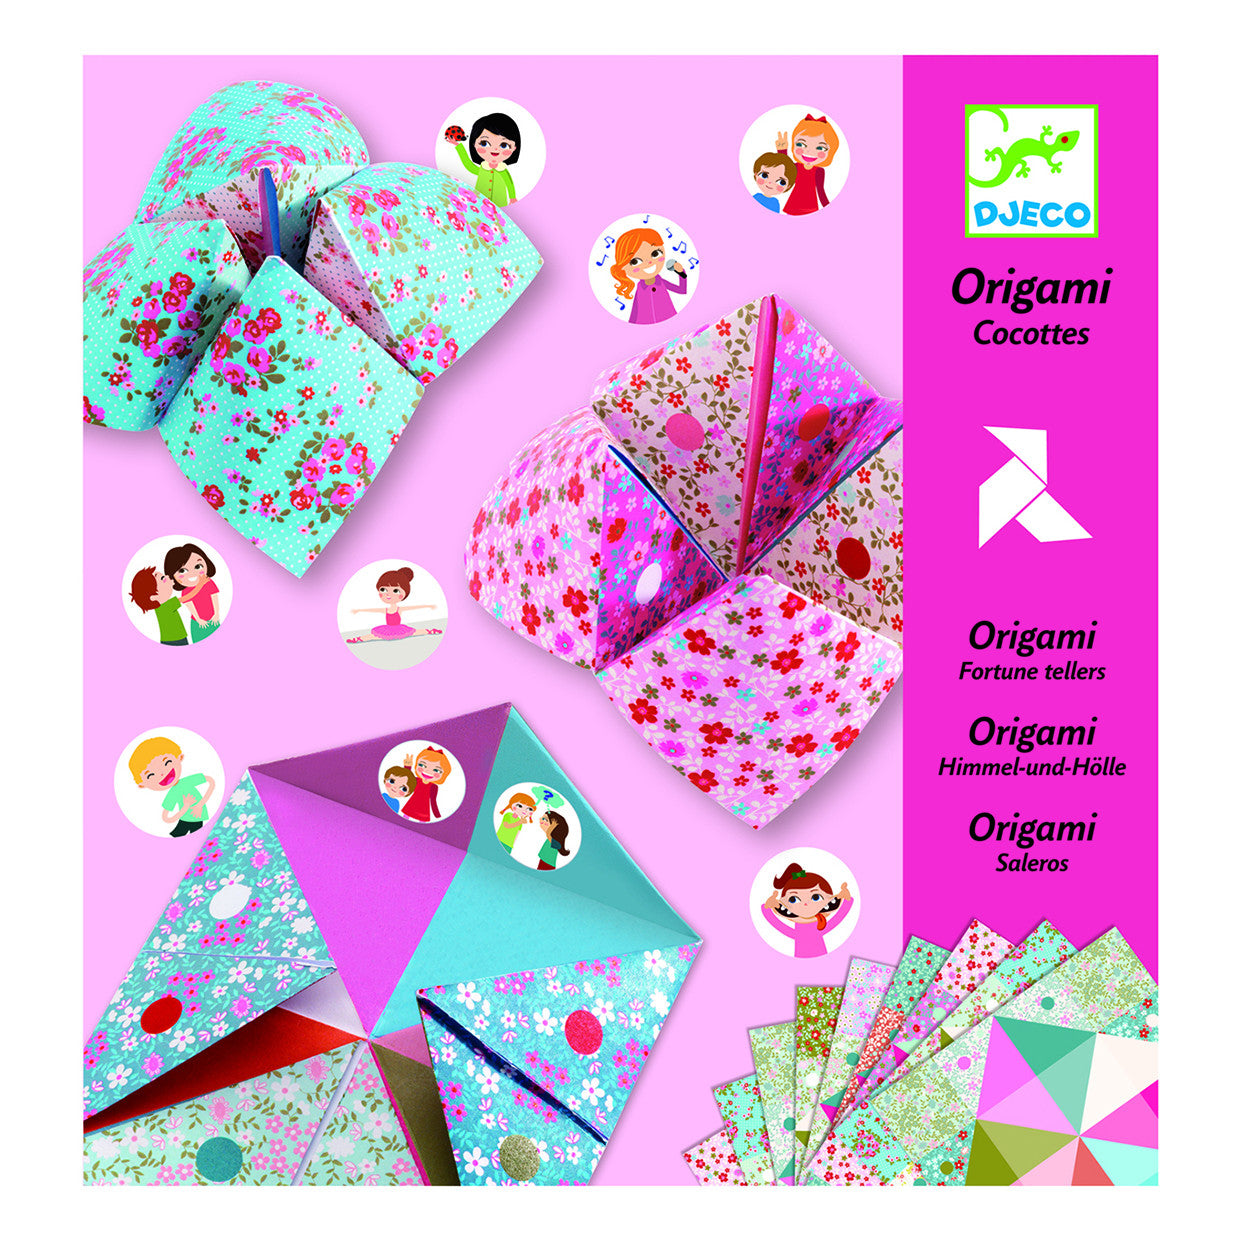 Fortune Tellers Origami Art Kit by Djeco - Little Citizens Boutique  - 1